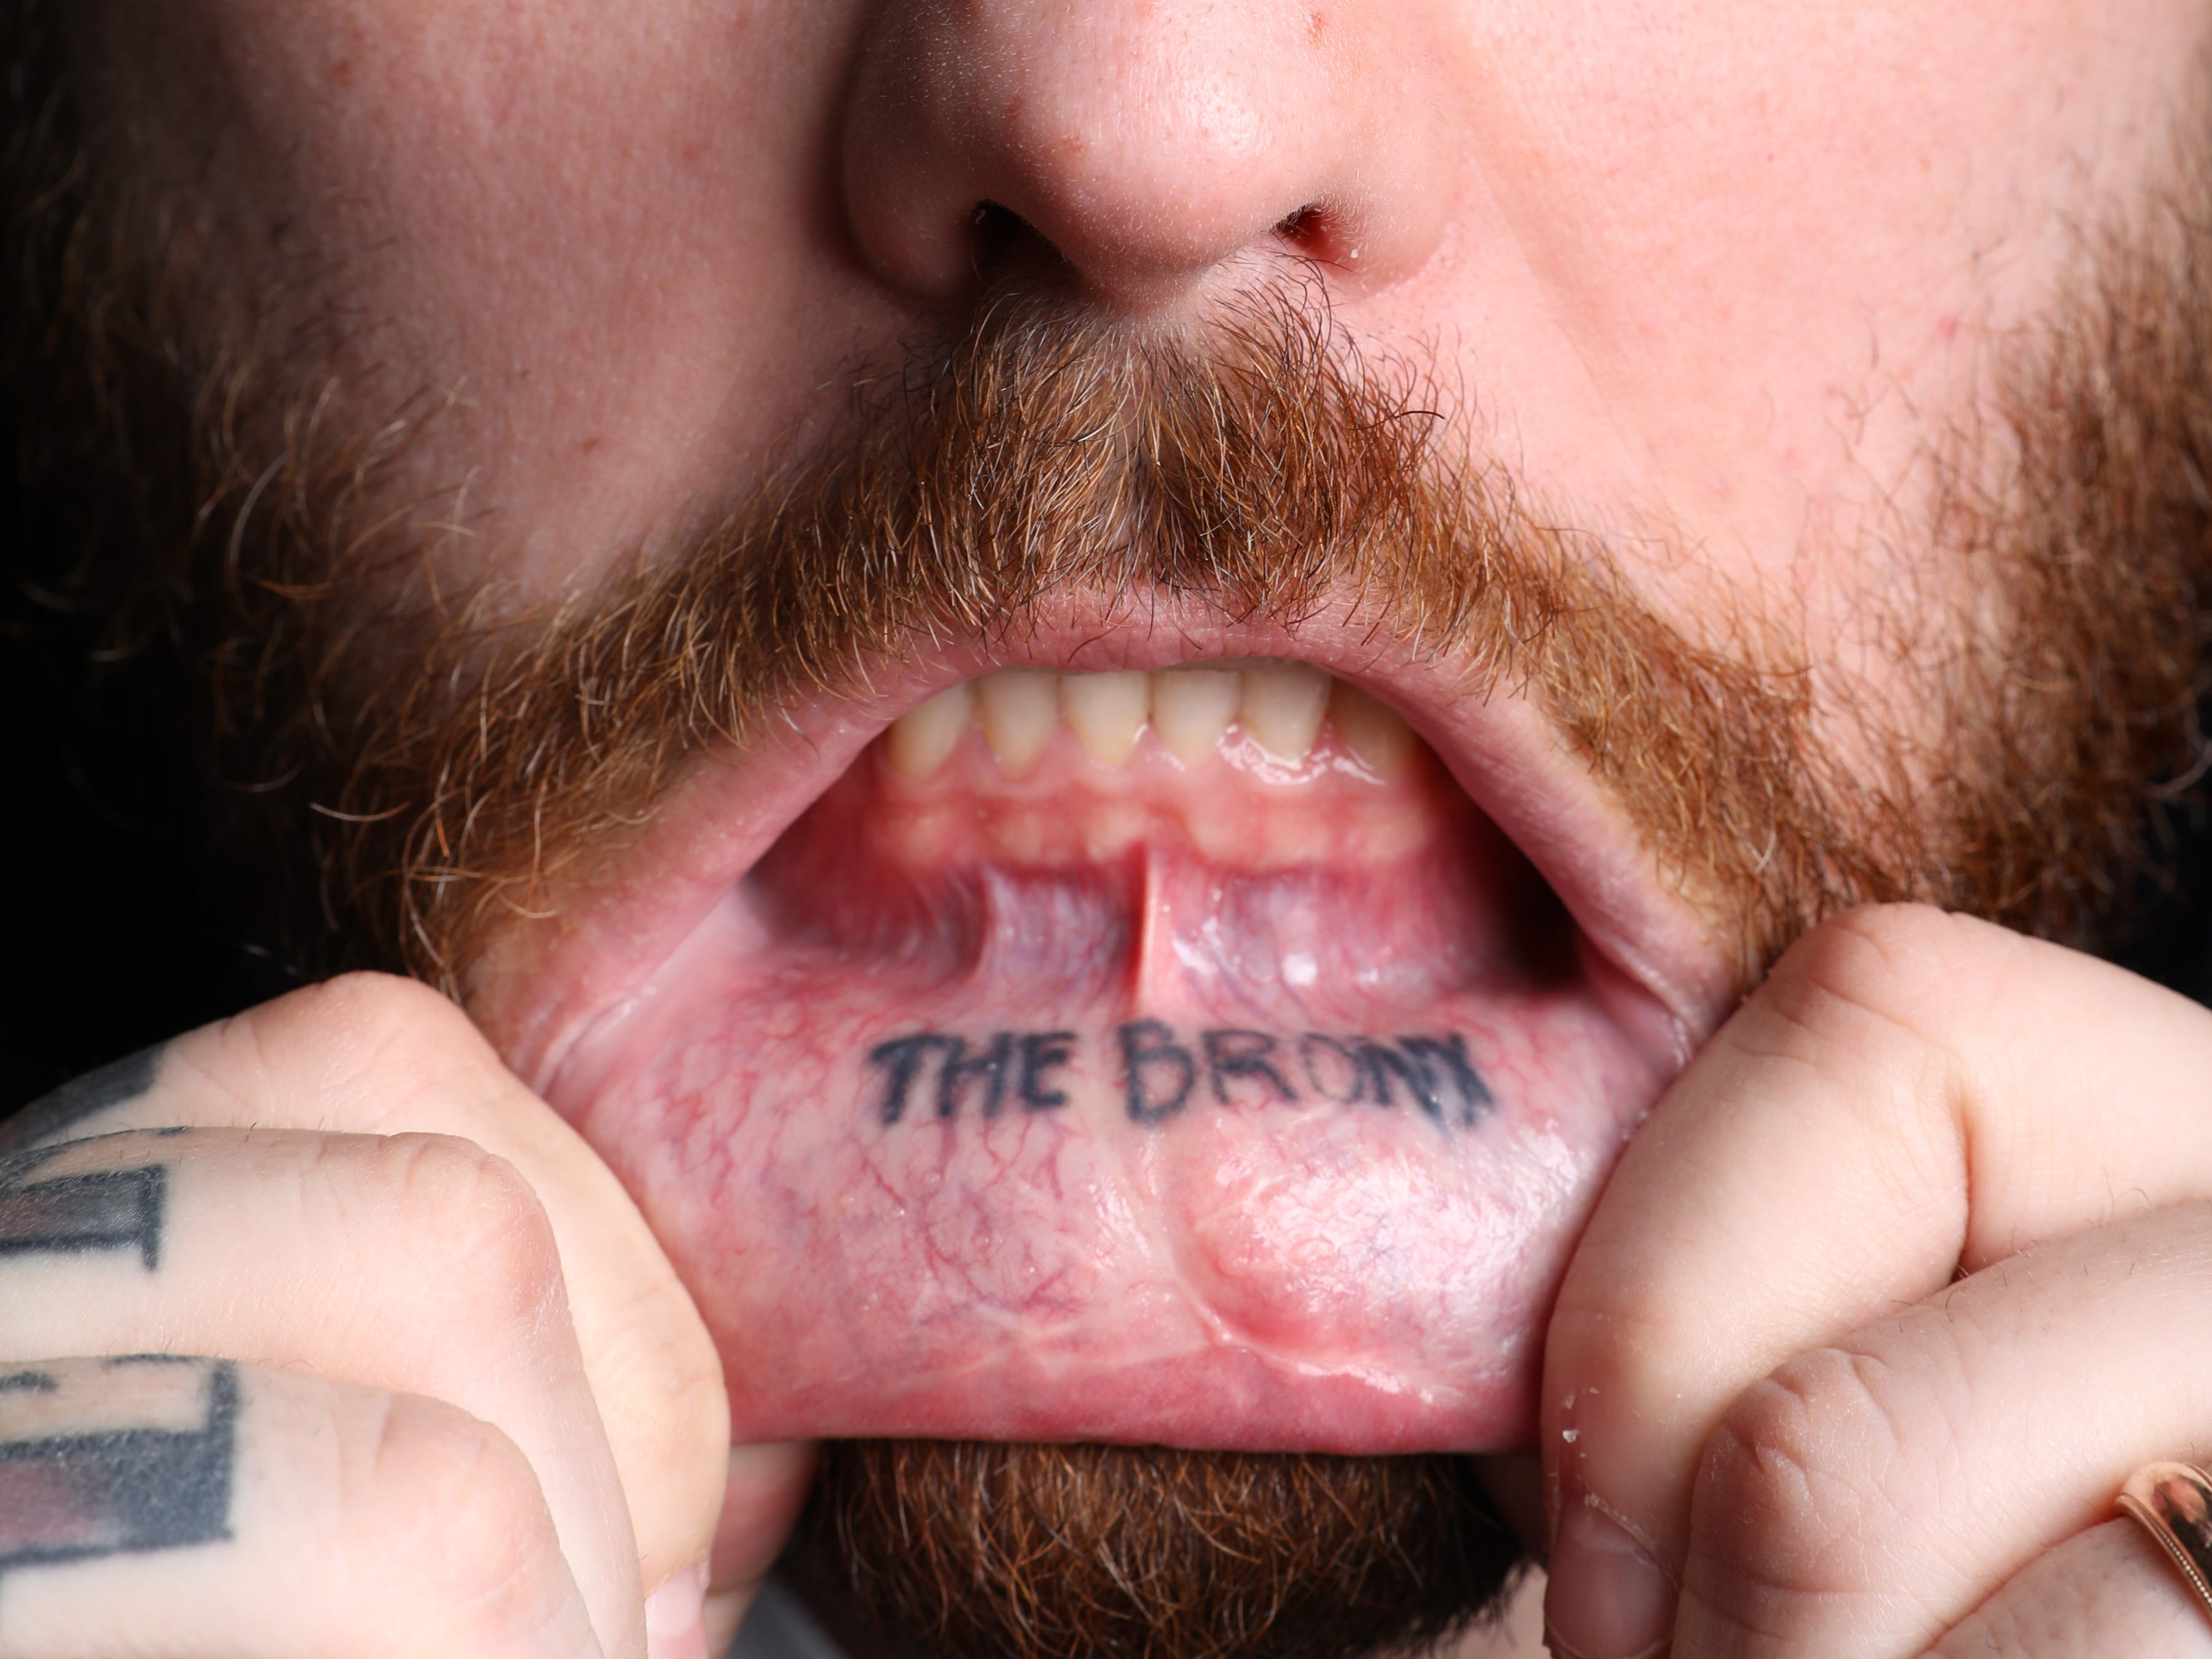 """Christian Petroni, chef and owner of Fortina restaurants, shows his lip tattoo with the words """"The Bronx"""" March 27, 2019 in Yonkers."""